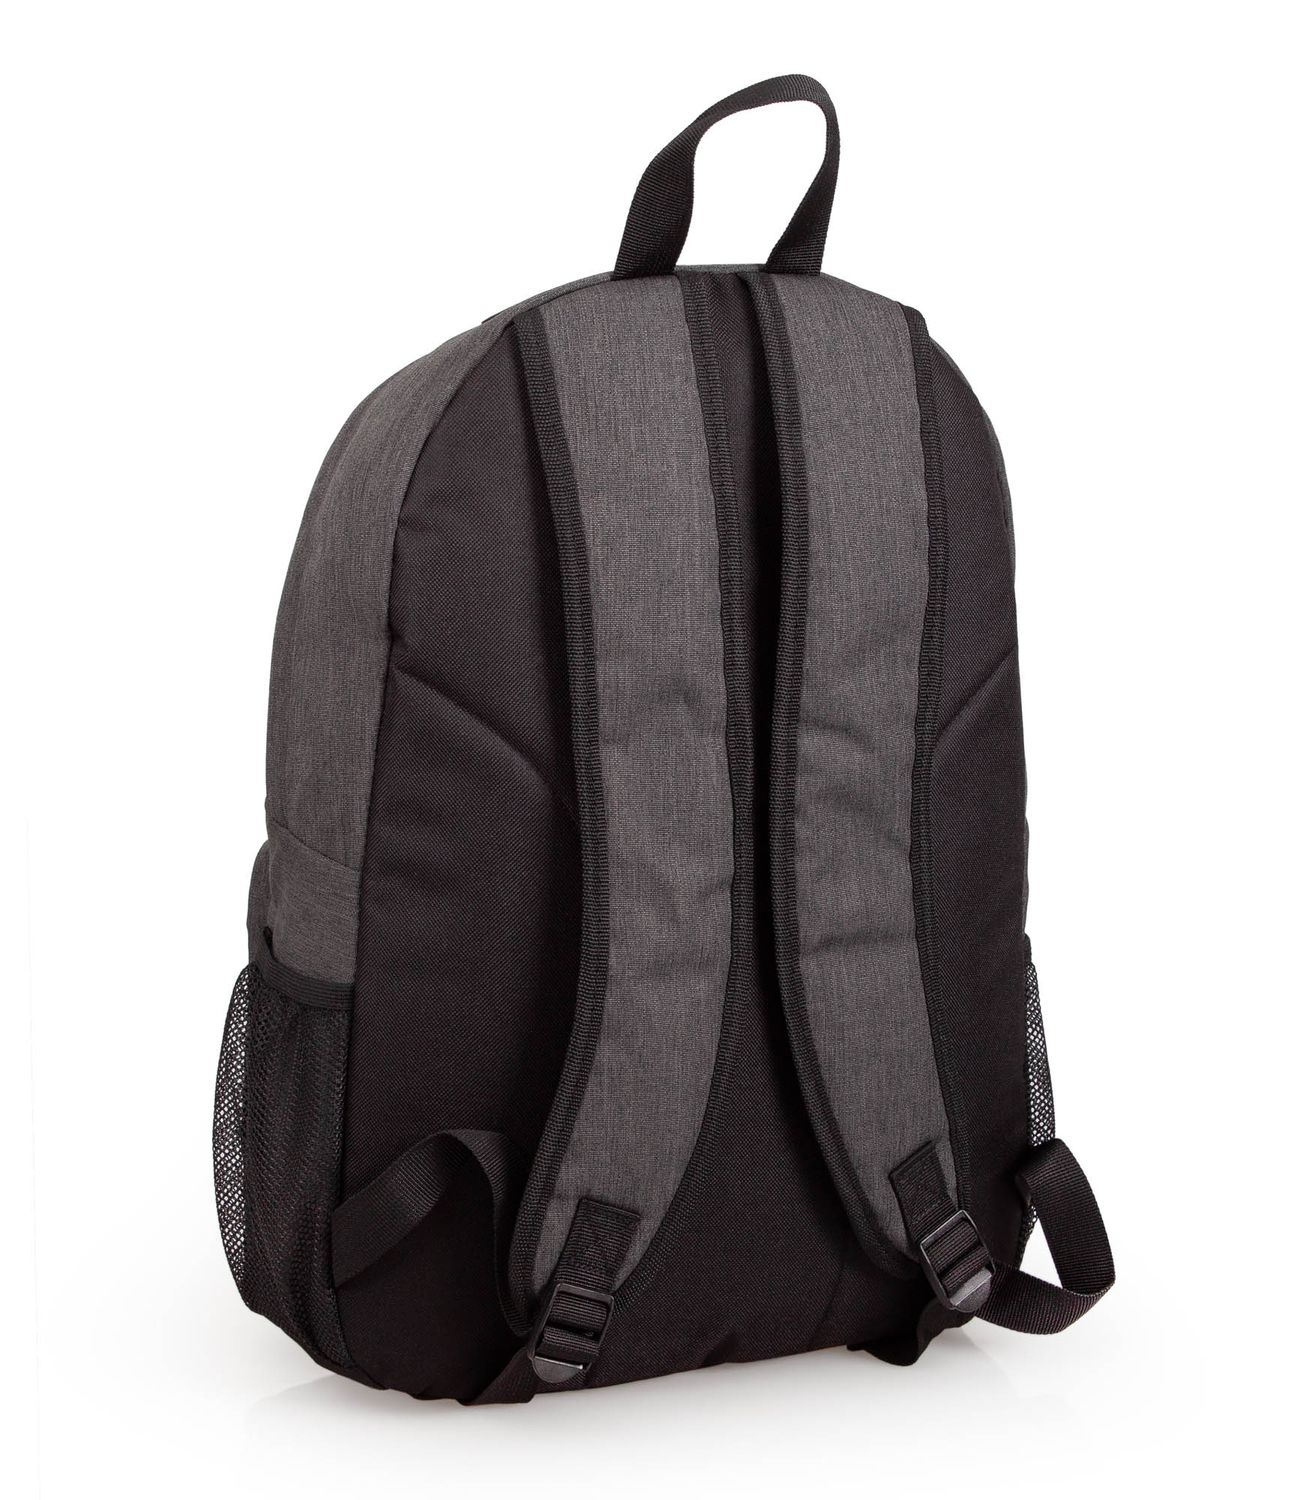 Backpack Rucksack Double Pocket EL CHARRO Grey – image 2